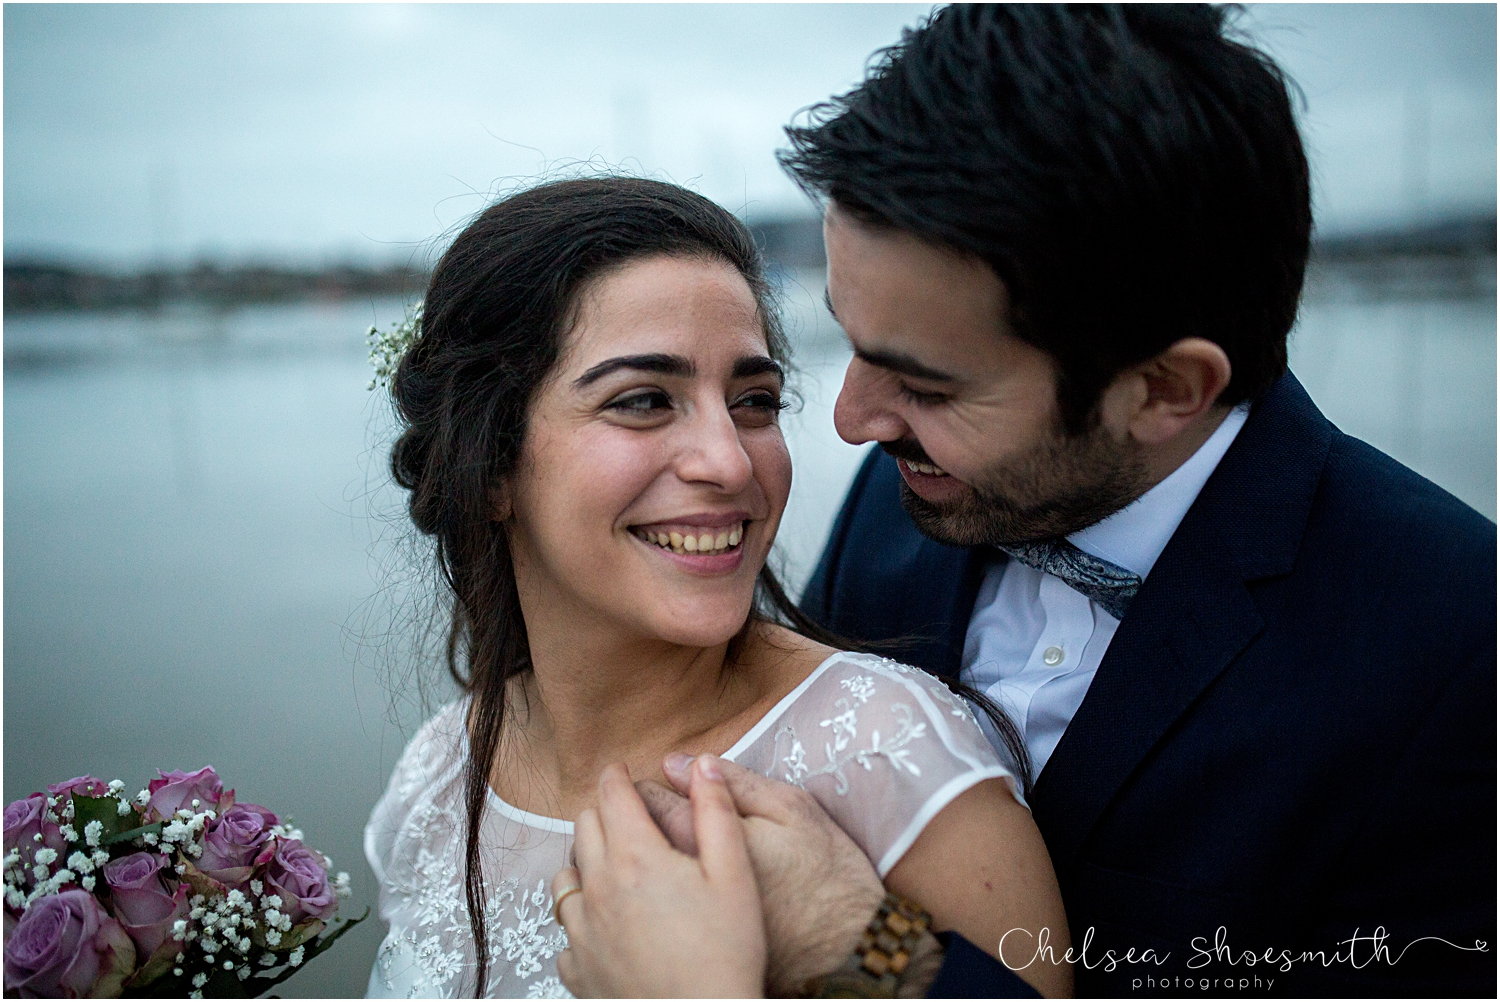 Zahara and Yashar - Chelsea Shoesmith Photography (147 of 340)